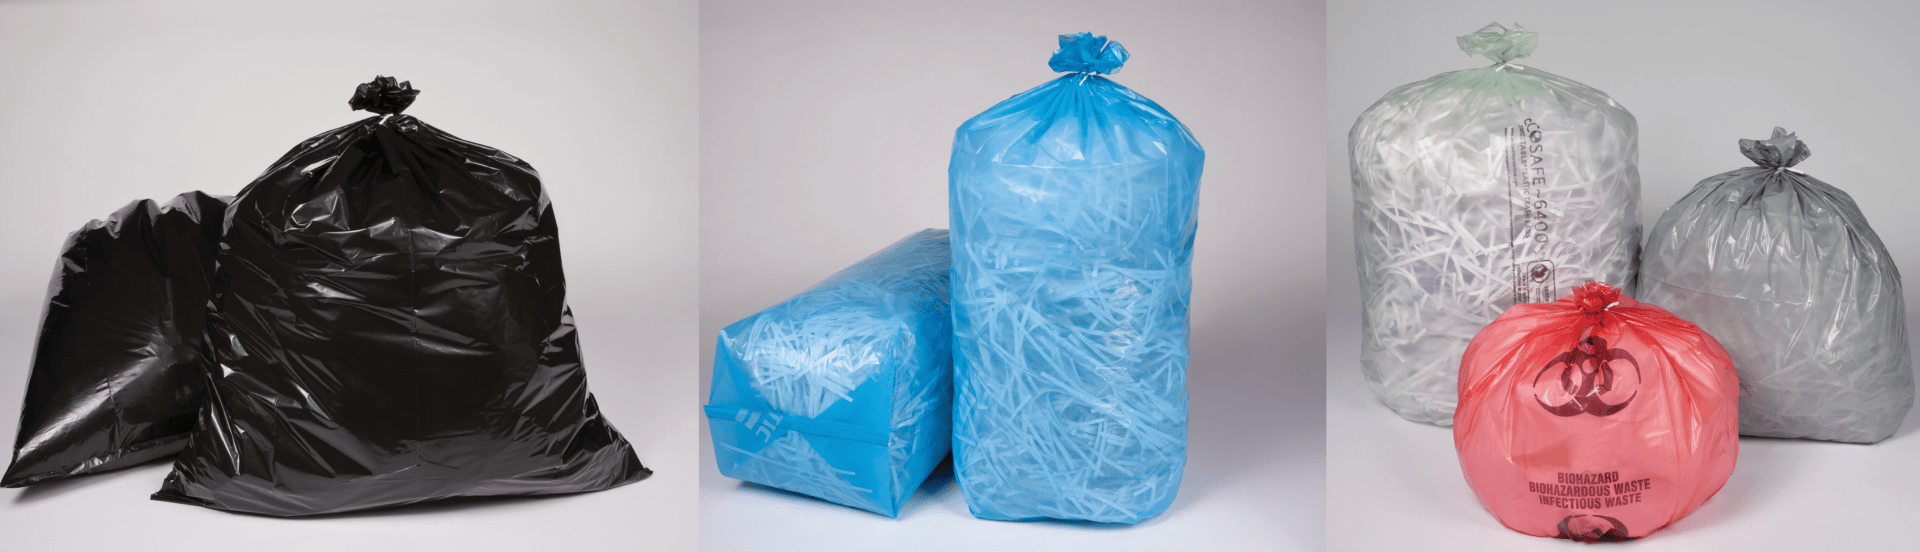 Can liners, handle bags, printed bags, lawn & garden, clean room applications